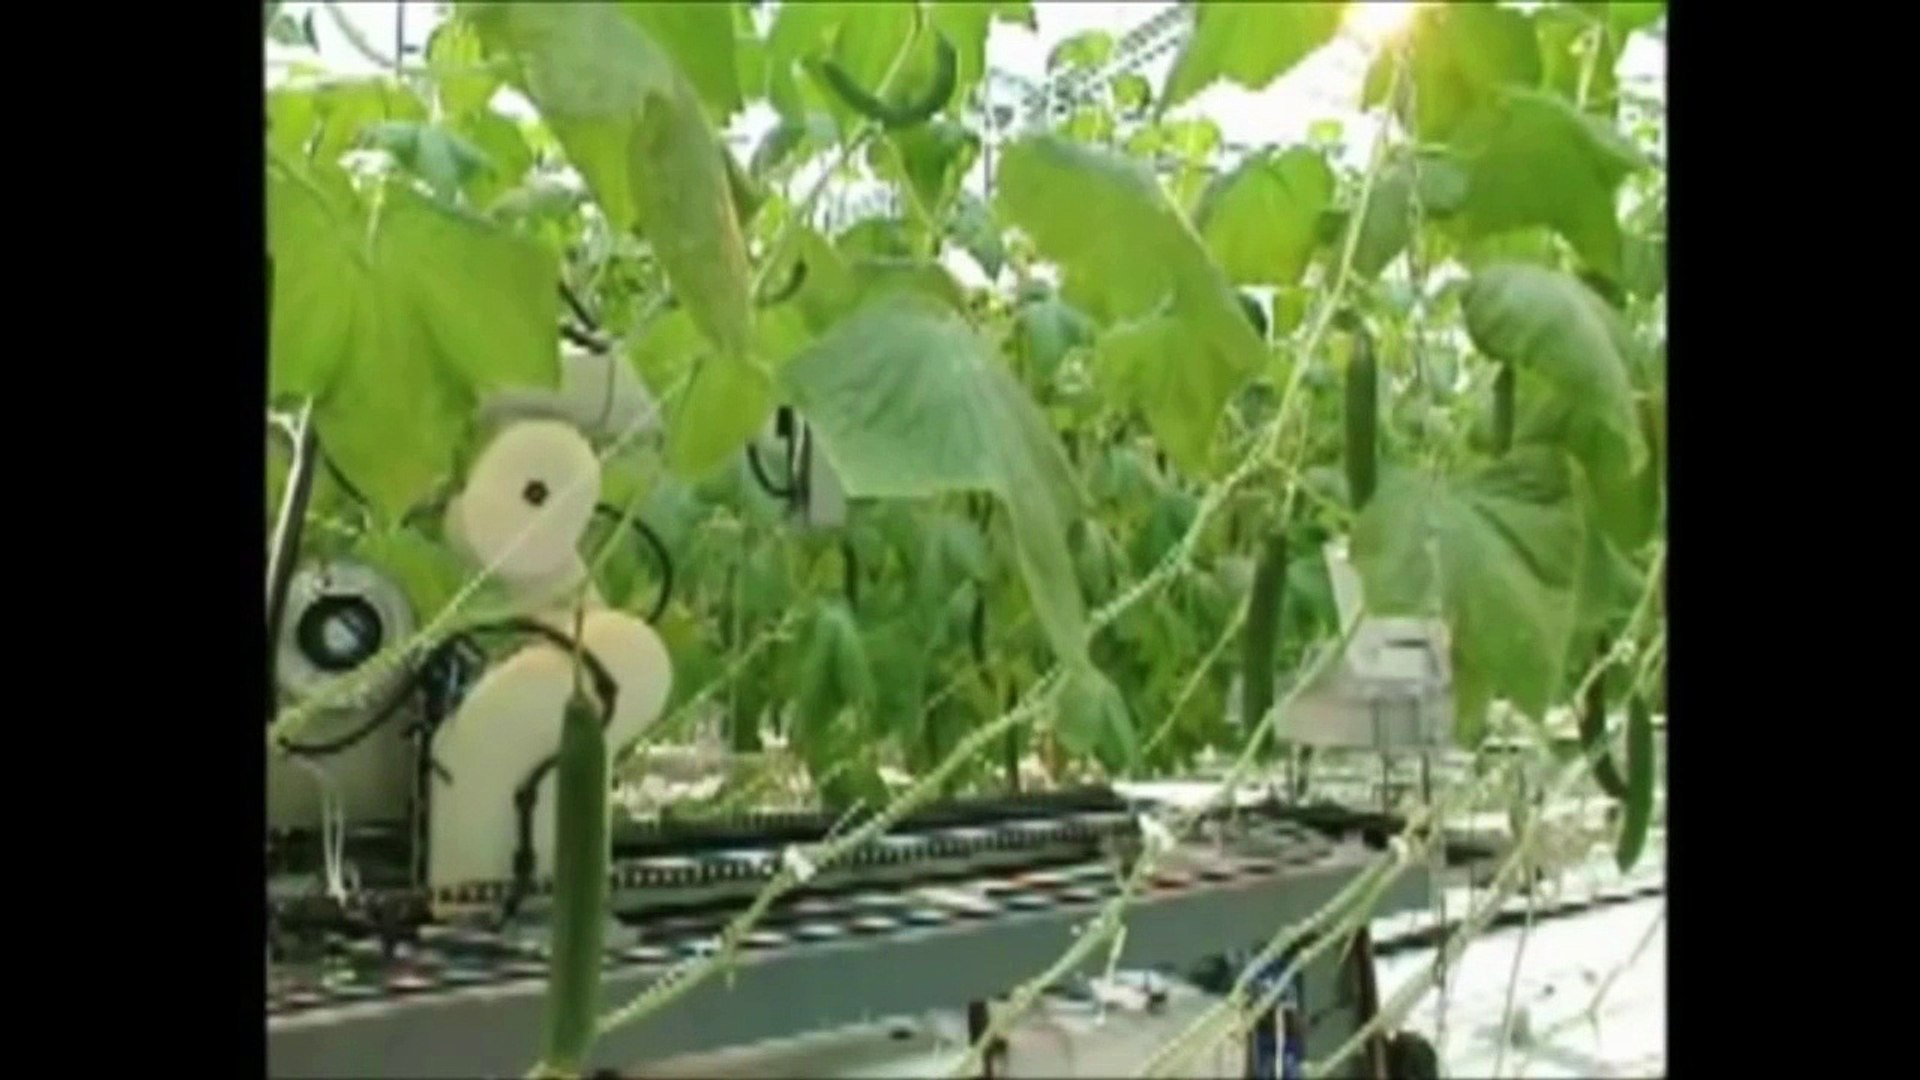 Machinery of latest technology, innovation in agriculture 1